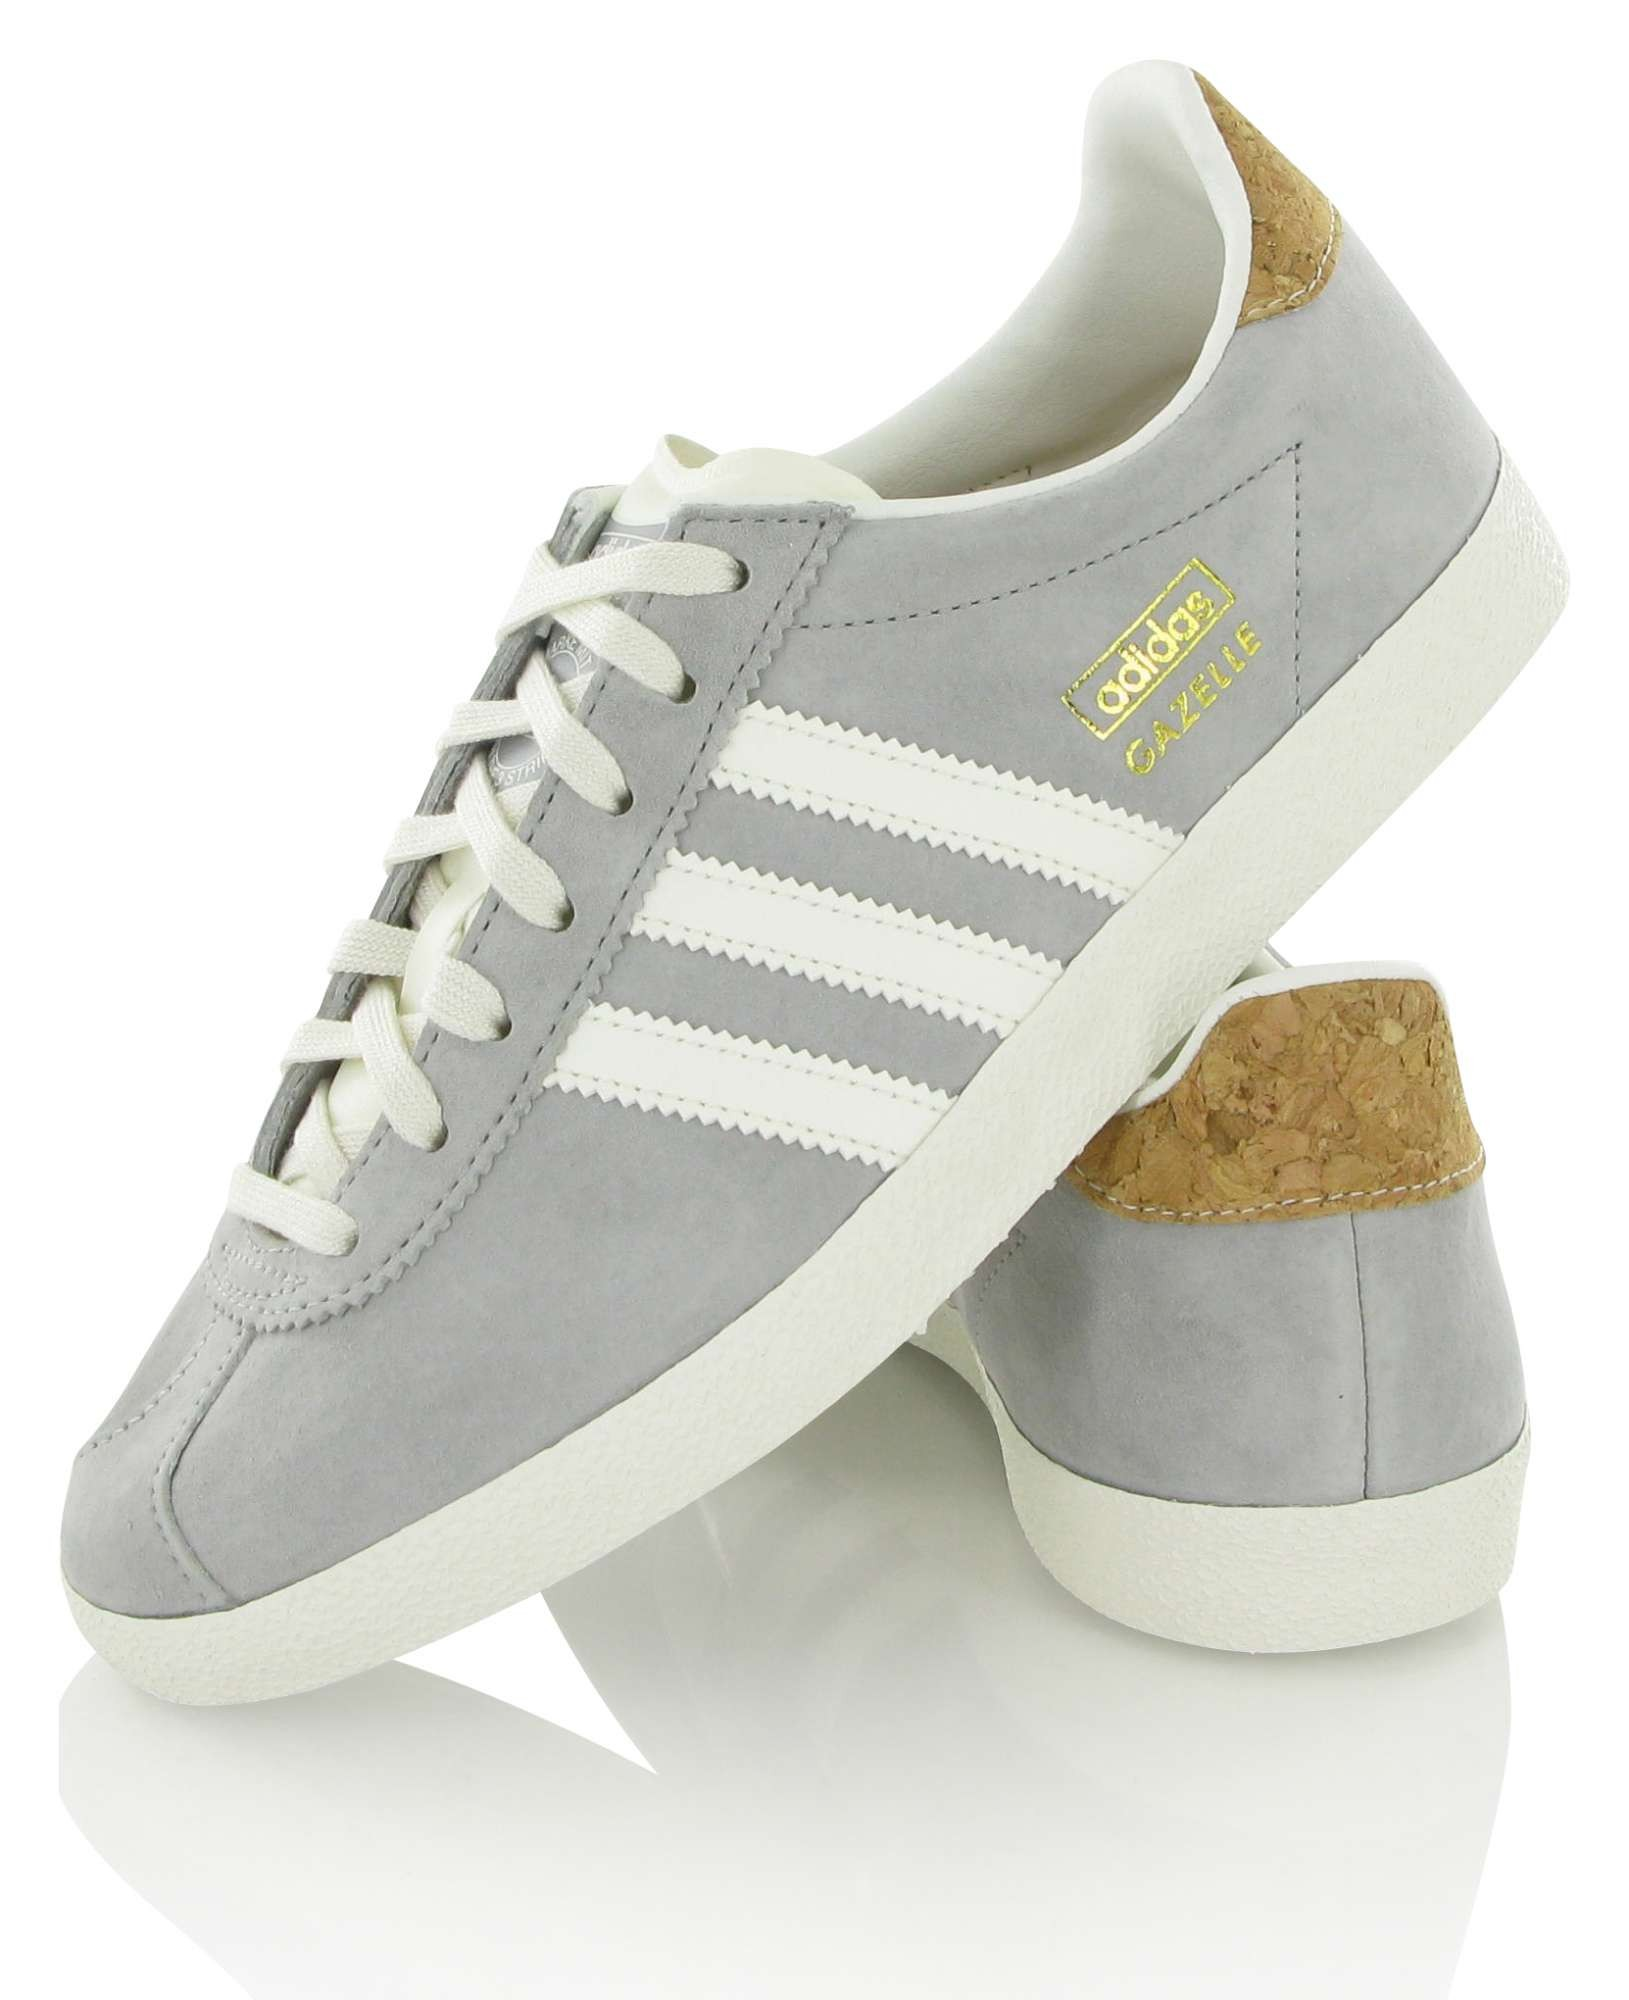 adidas gazelle blanche homme pas cher